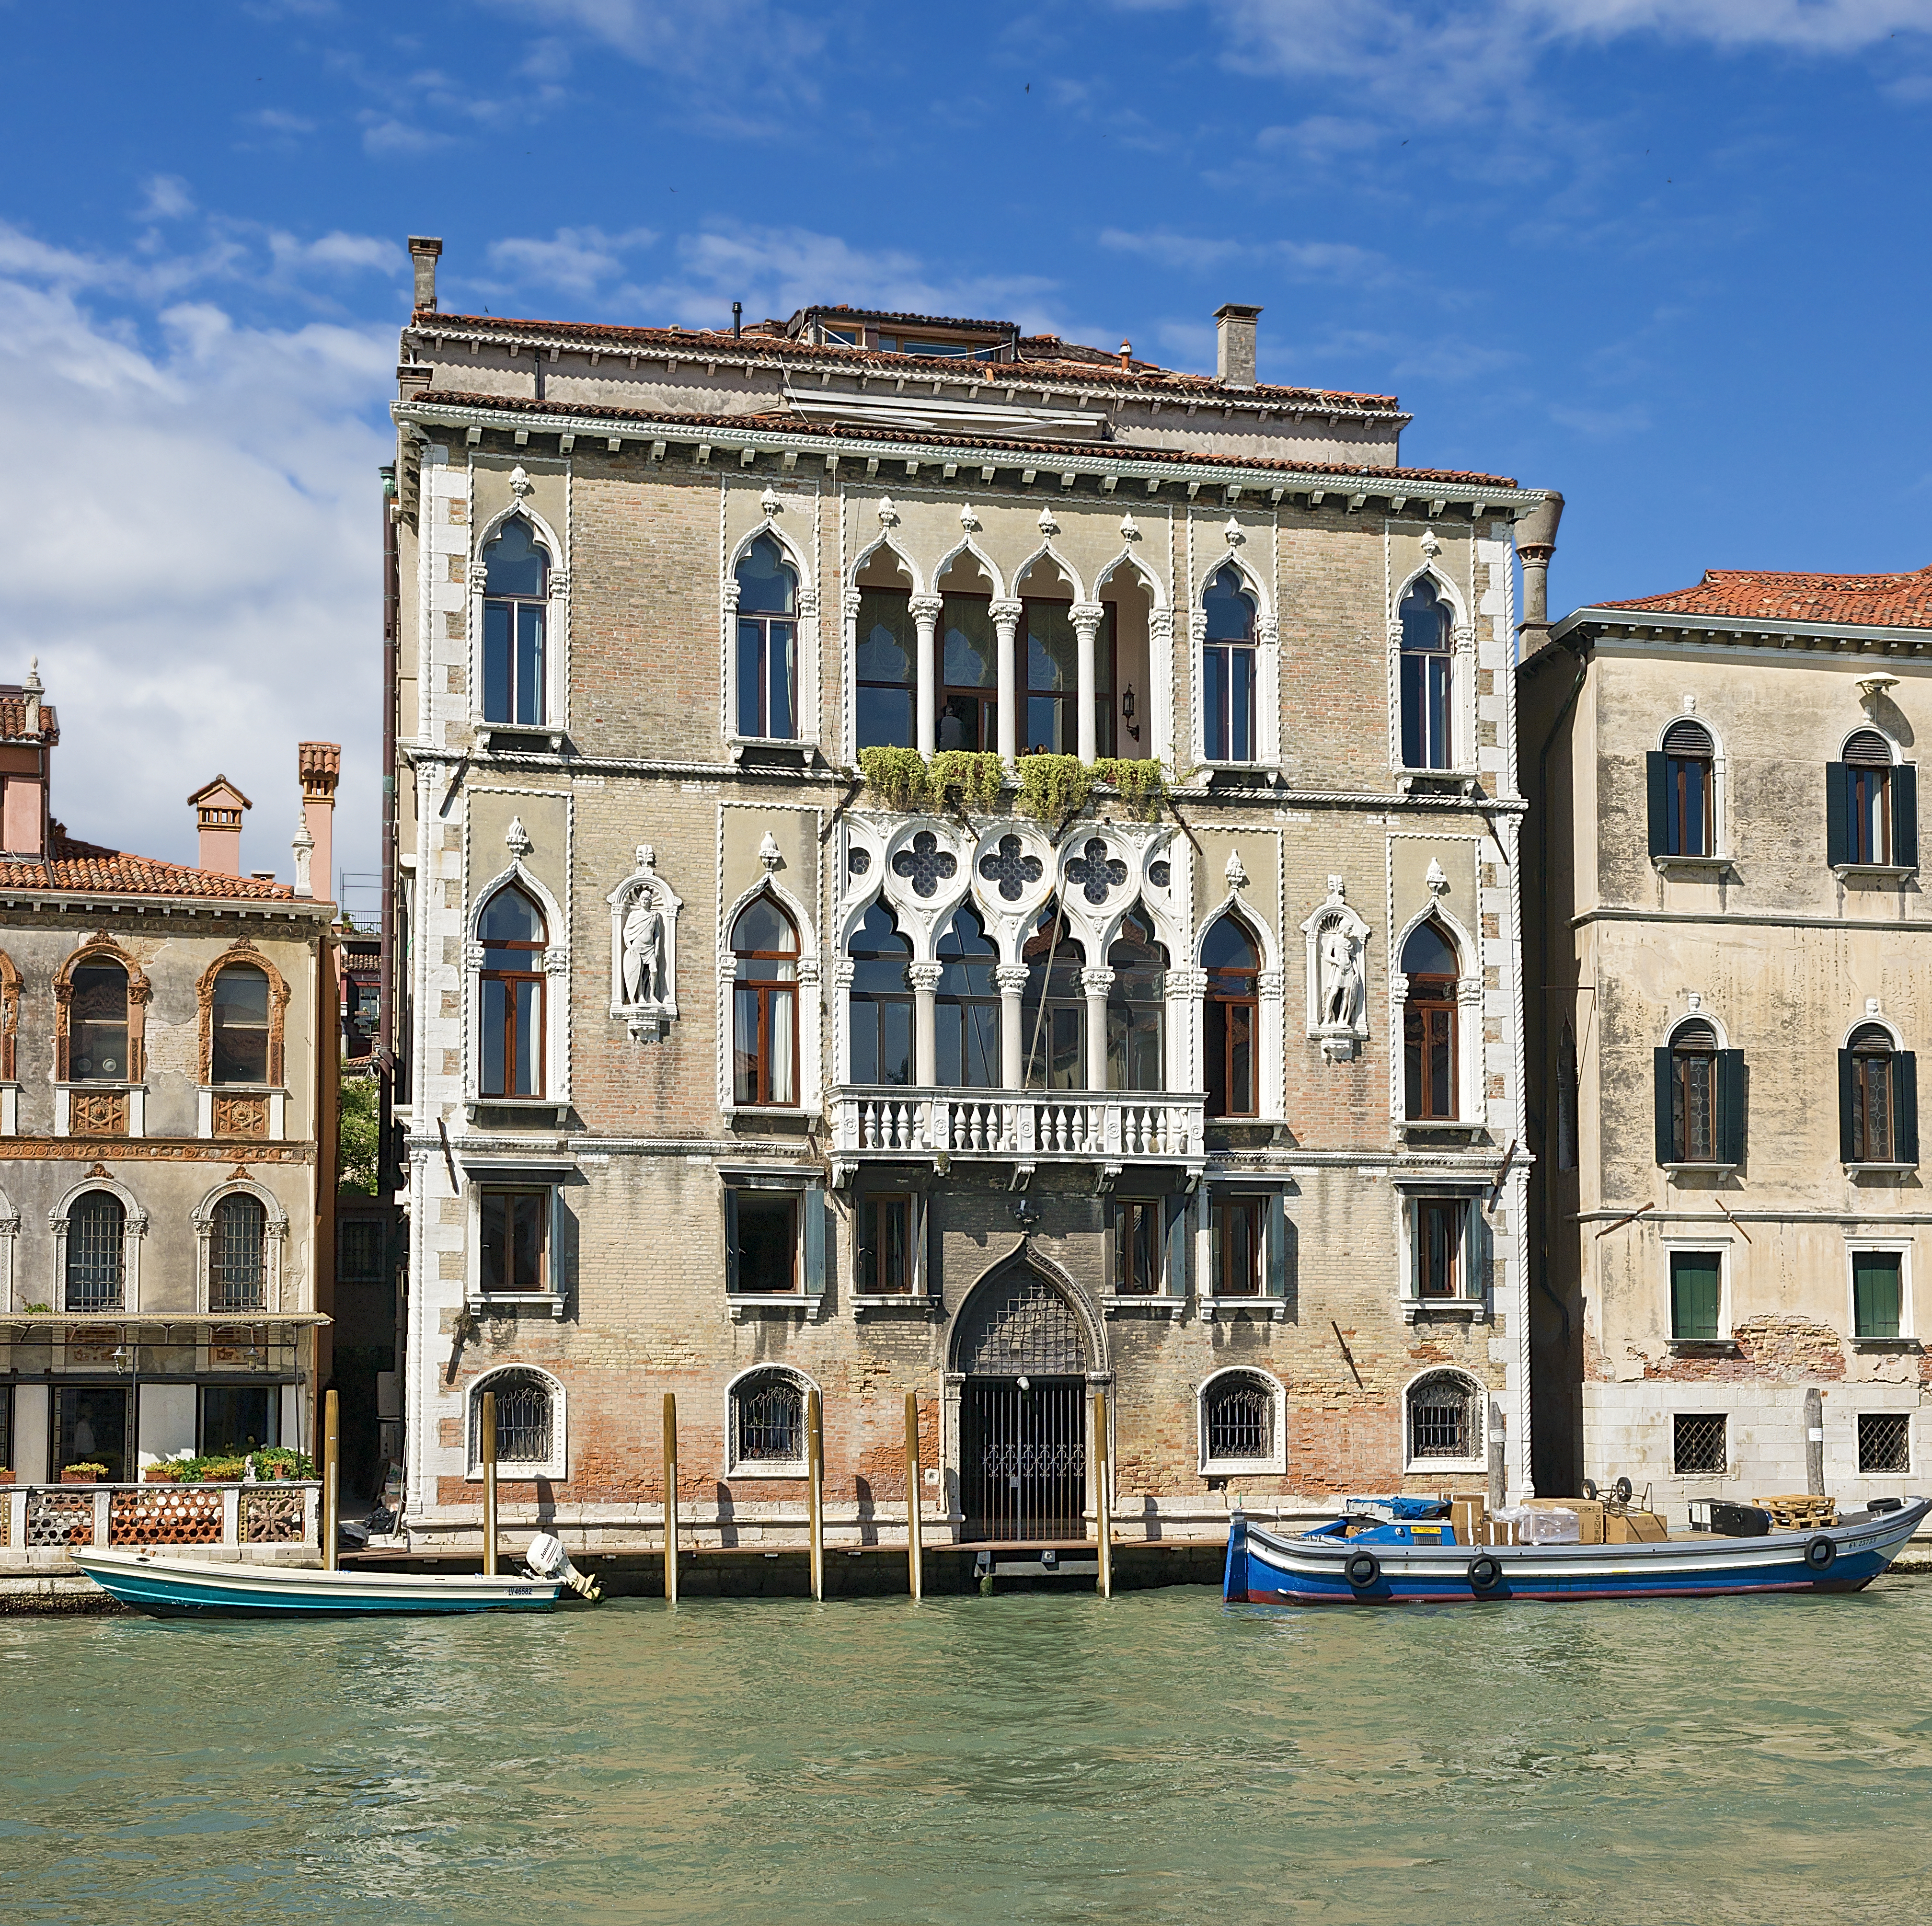 https://upload.wikimedia.org/wikipedia/commons/9/9c/Palazzo_Loredan_dell'Ambasciatore_(Venice).jpg